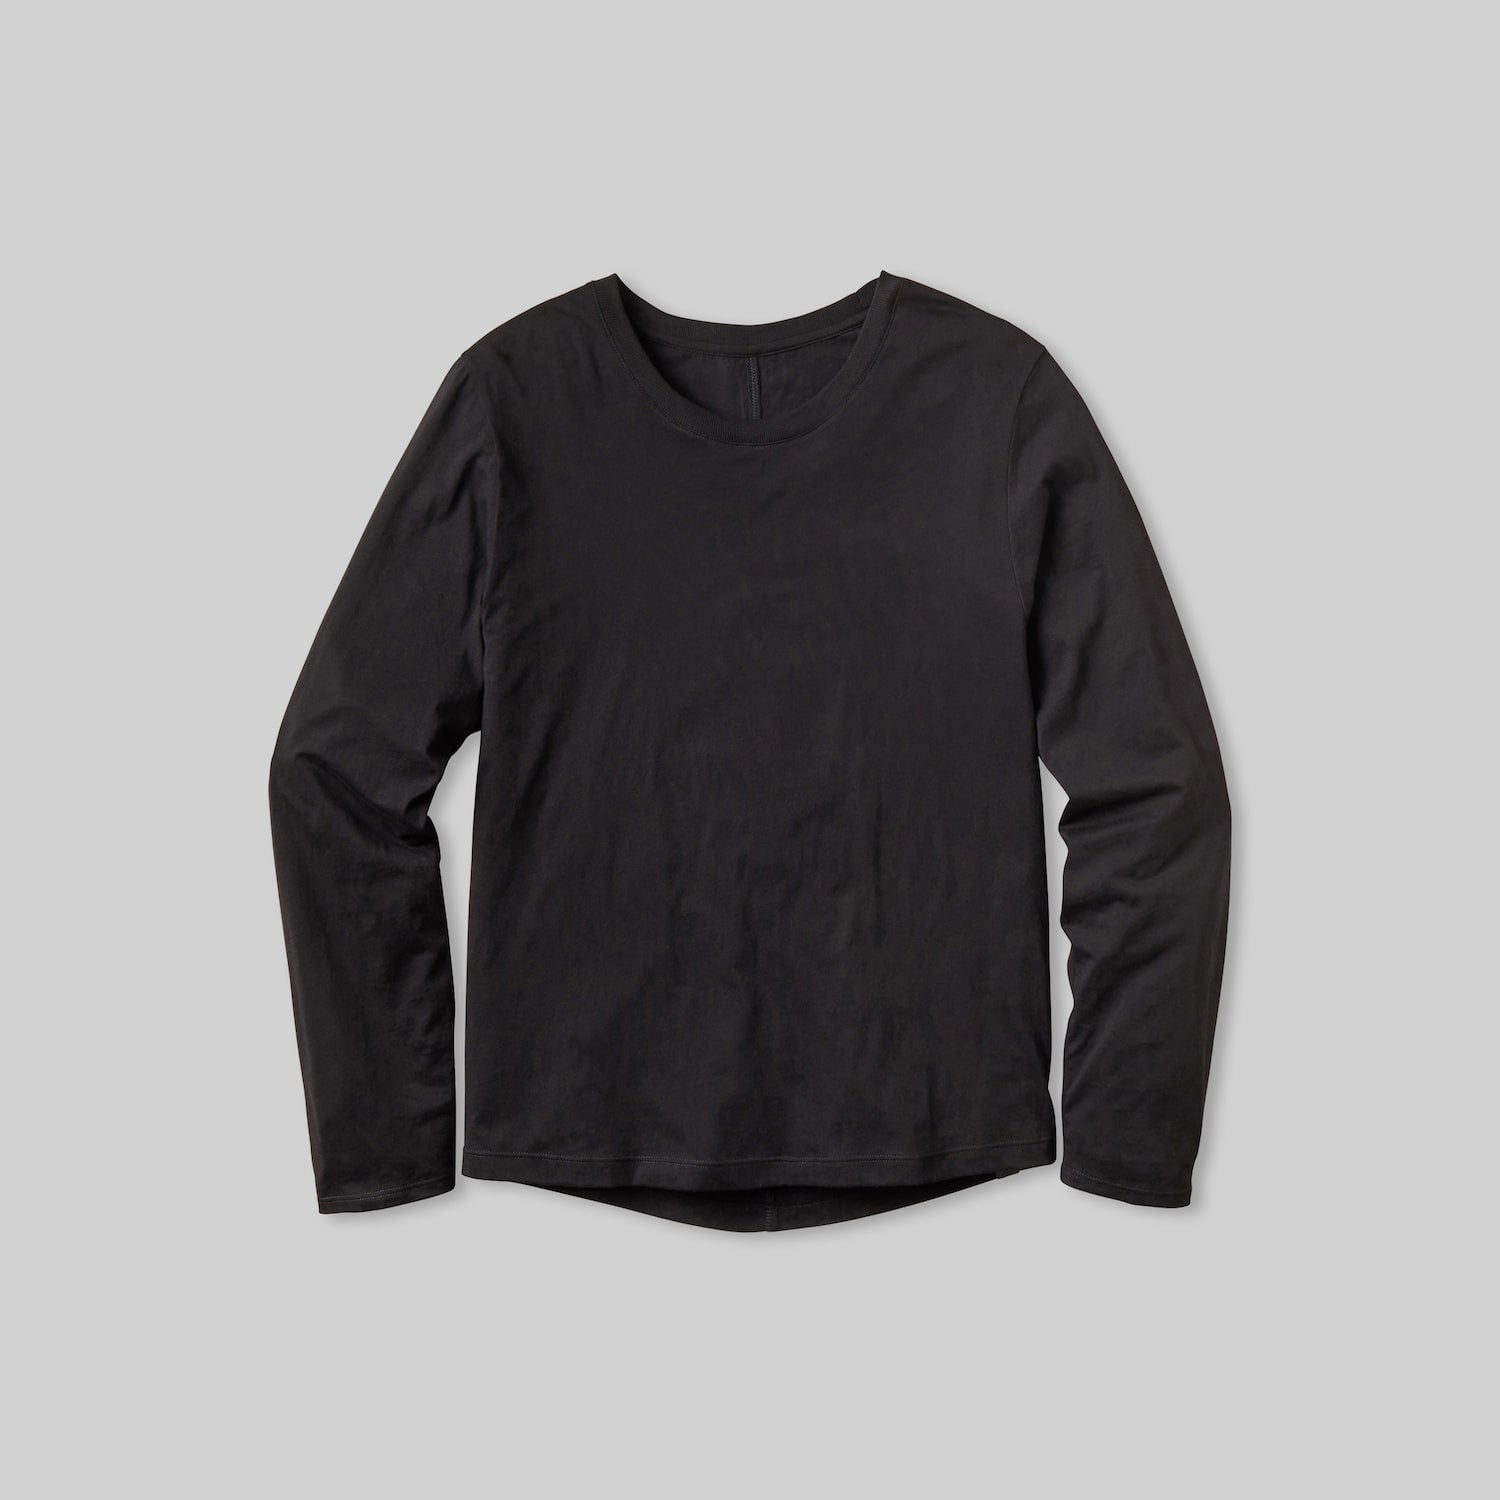 Lahgo Sleepwear Organic Long Sleeve Tee - #Black